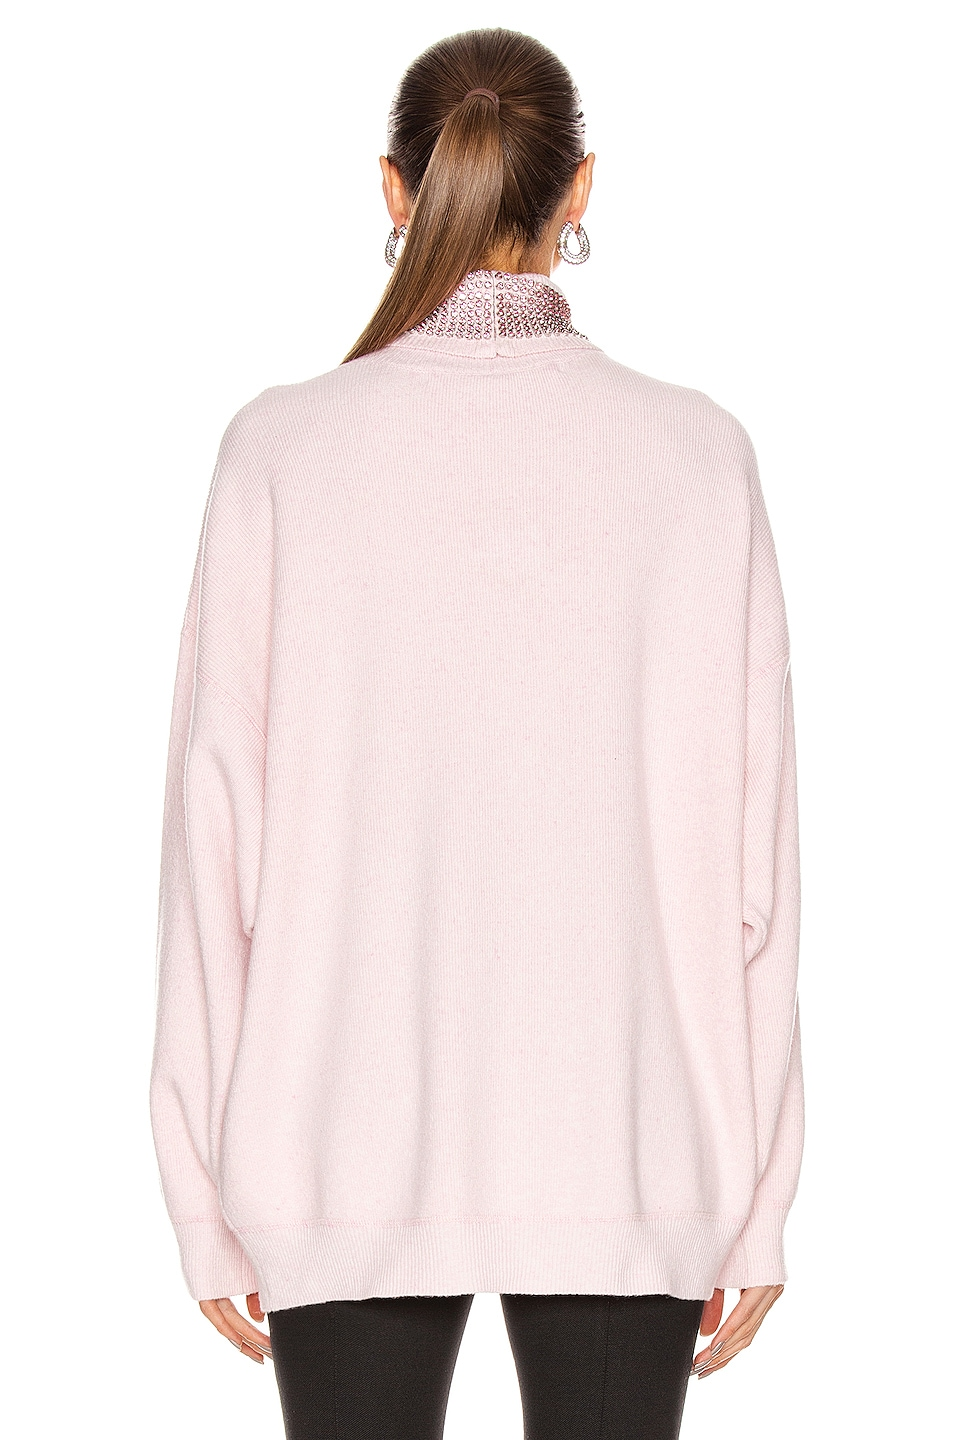 Image 3 of Alexander Wang Crystal Neck Turtleneck Sweater in Pink